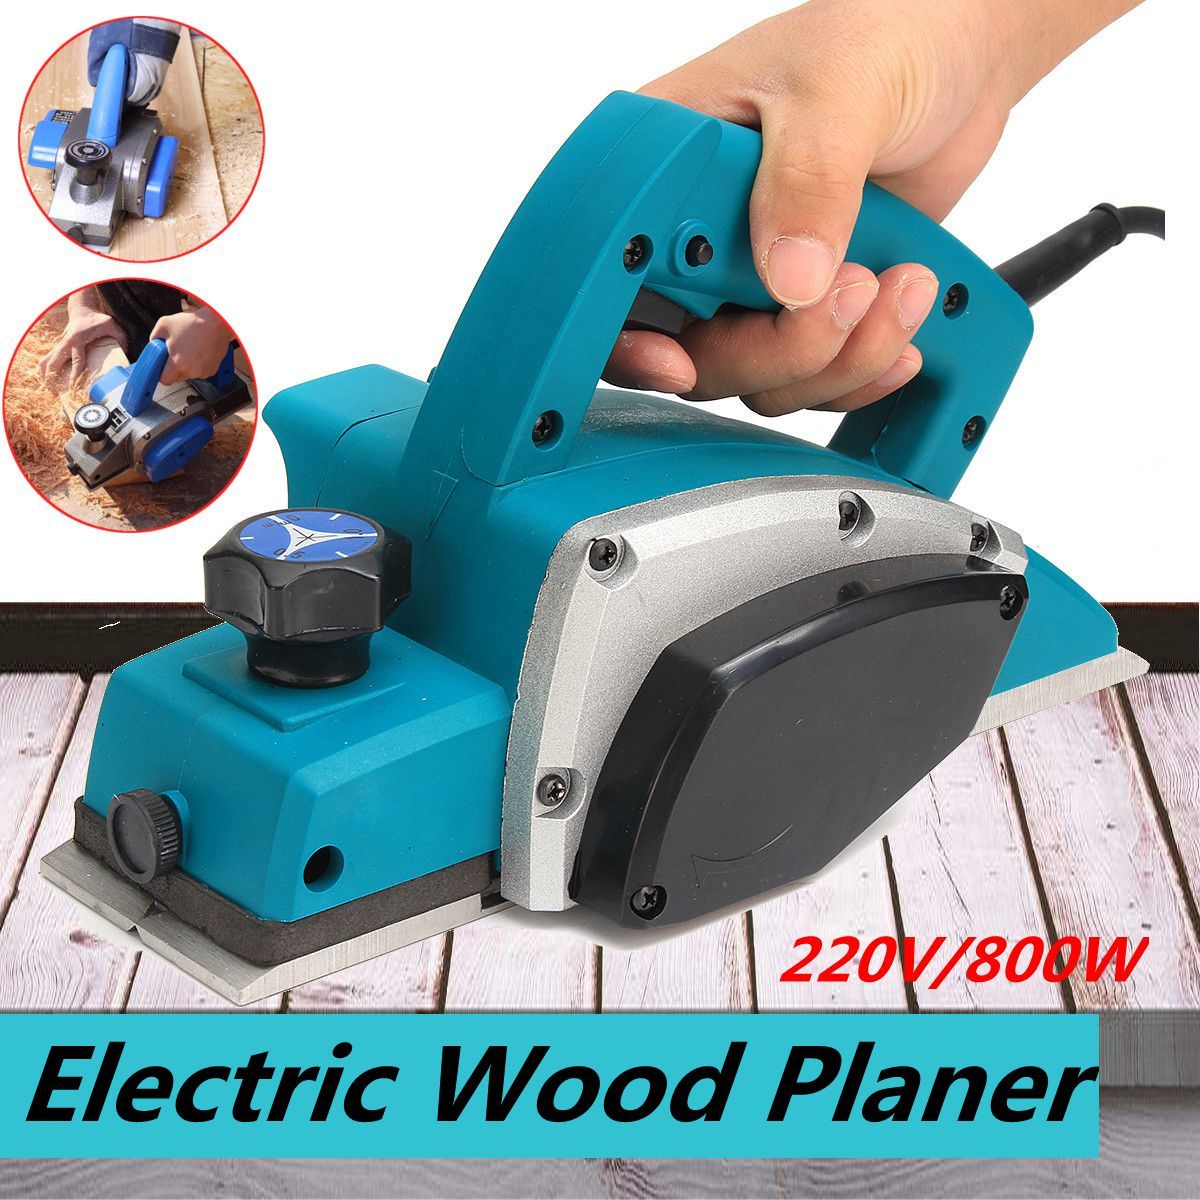 220V 800W ful Electric Wood Planer Door Plane Hand Held Woodworking Surface